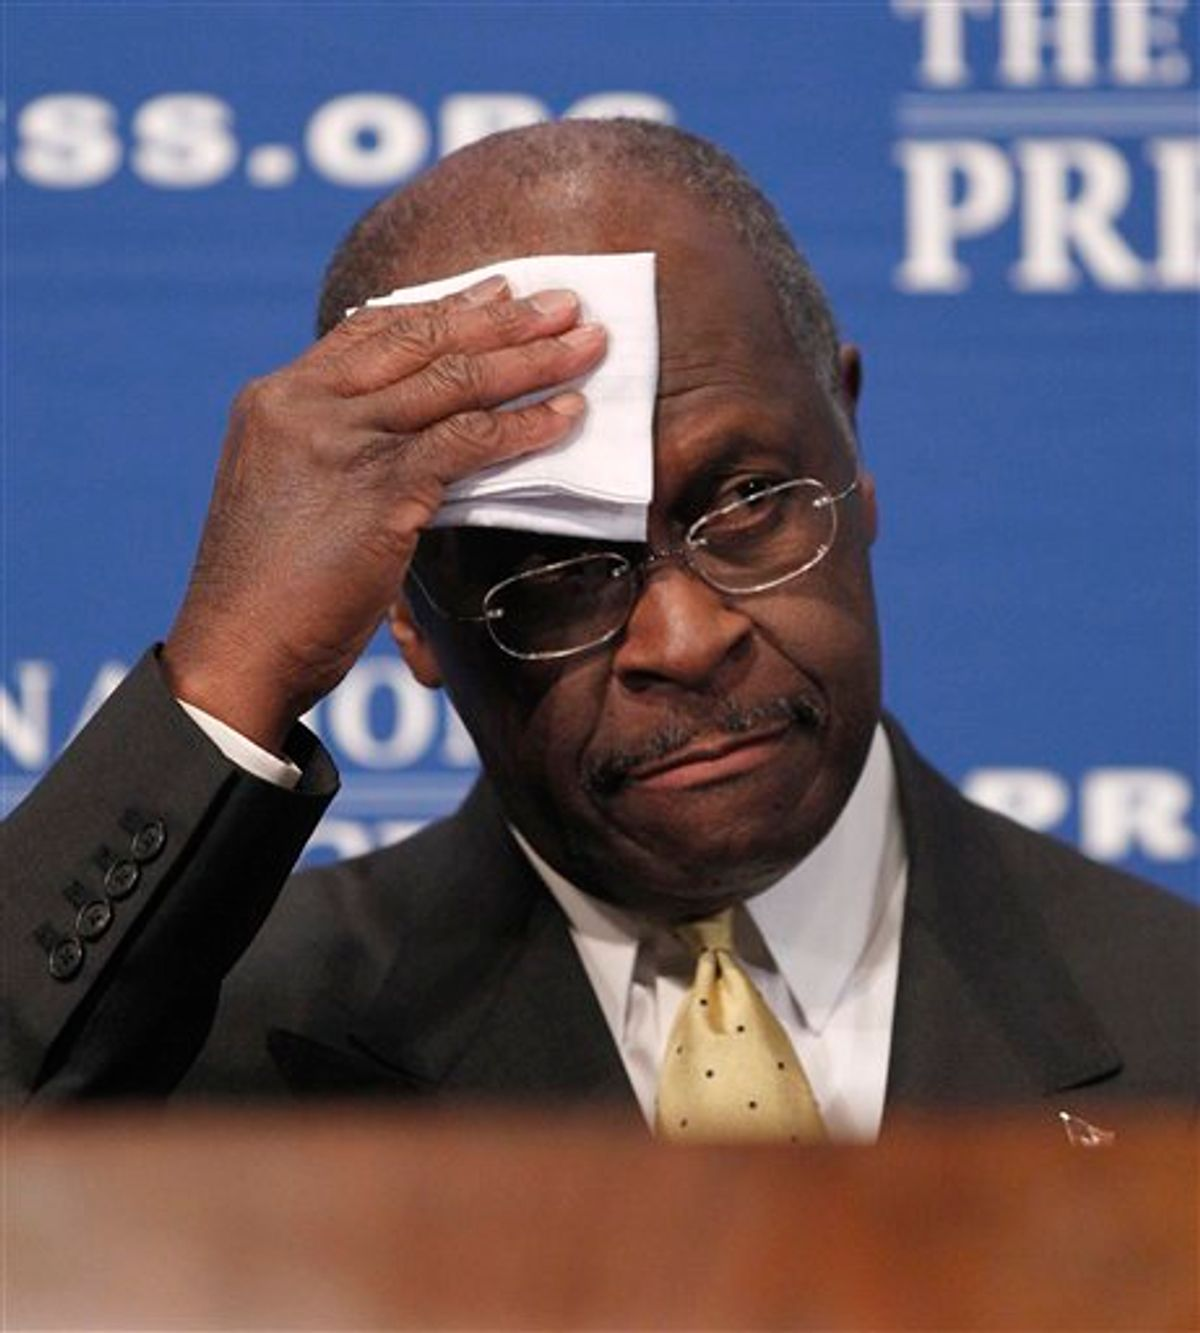 """Republican presidential candidate, Herman Cain wipes his forehead before answering questions at the National Press Club in Washington, Monday, Oct., 31, 2011. Denying he sexually harassed anyone, Cain said Monday he was falsely accused in the 1990s while he was head of the National Restaurant Association, and he branded revelation of the allegations a """"witch hunt."""". (AP Photo/Pablo Martinez Monsivais)  (AP)"""